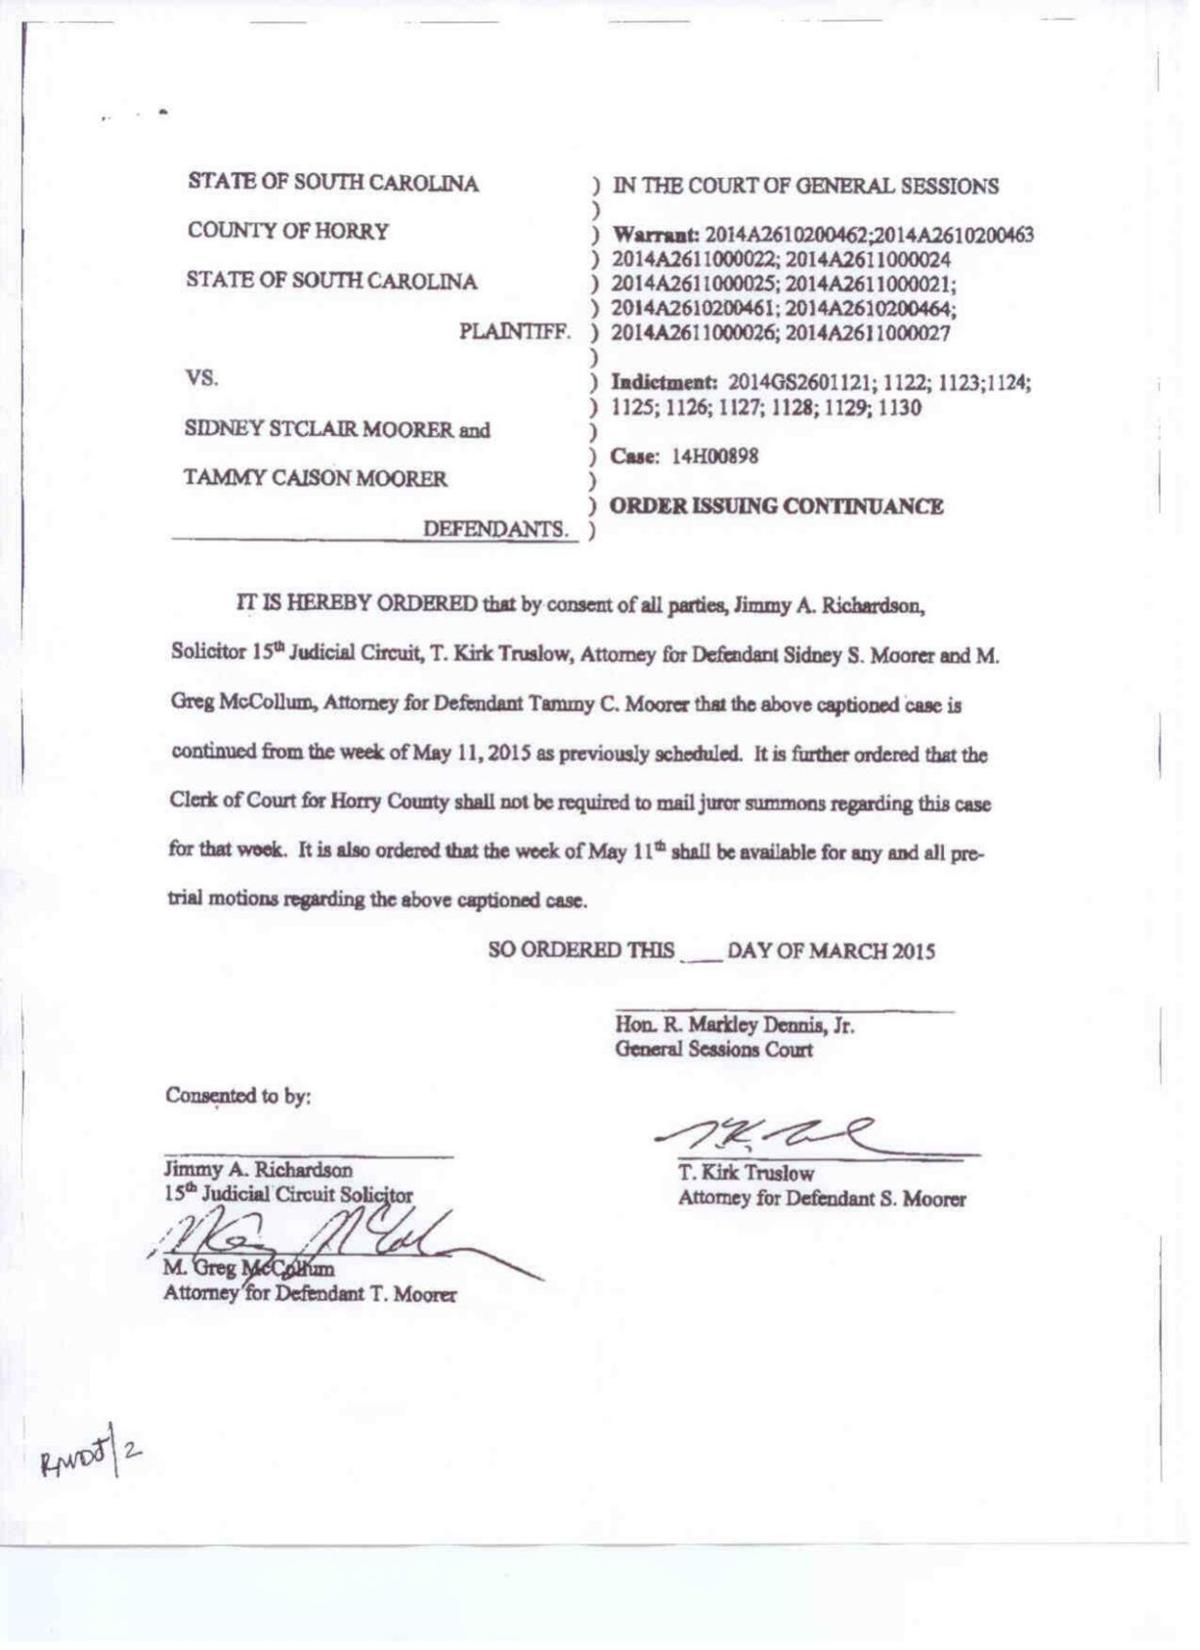 Order | Trial of Sidney and Tammy Moorer continued | Crime